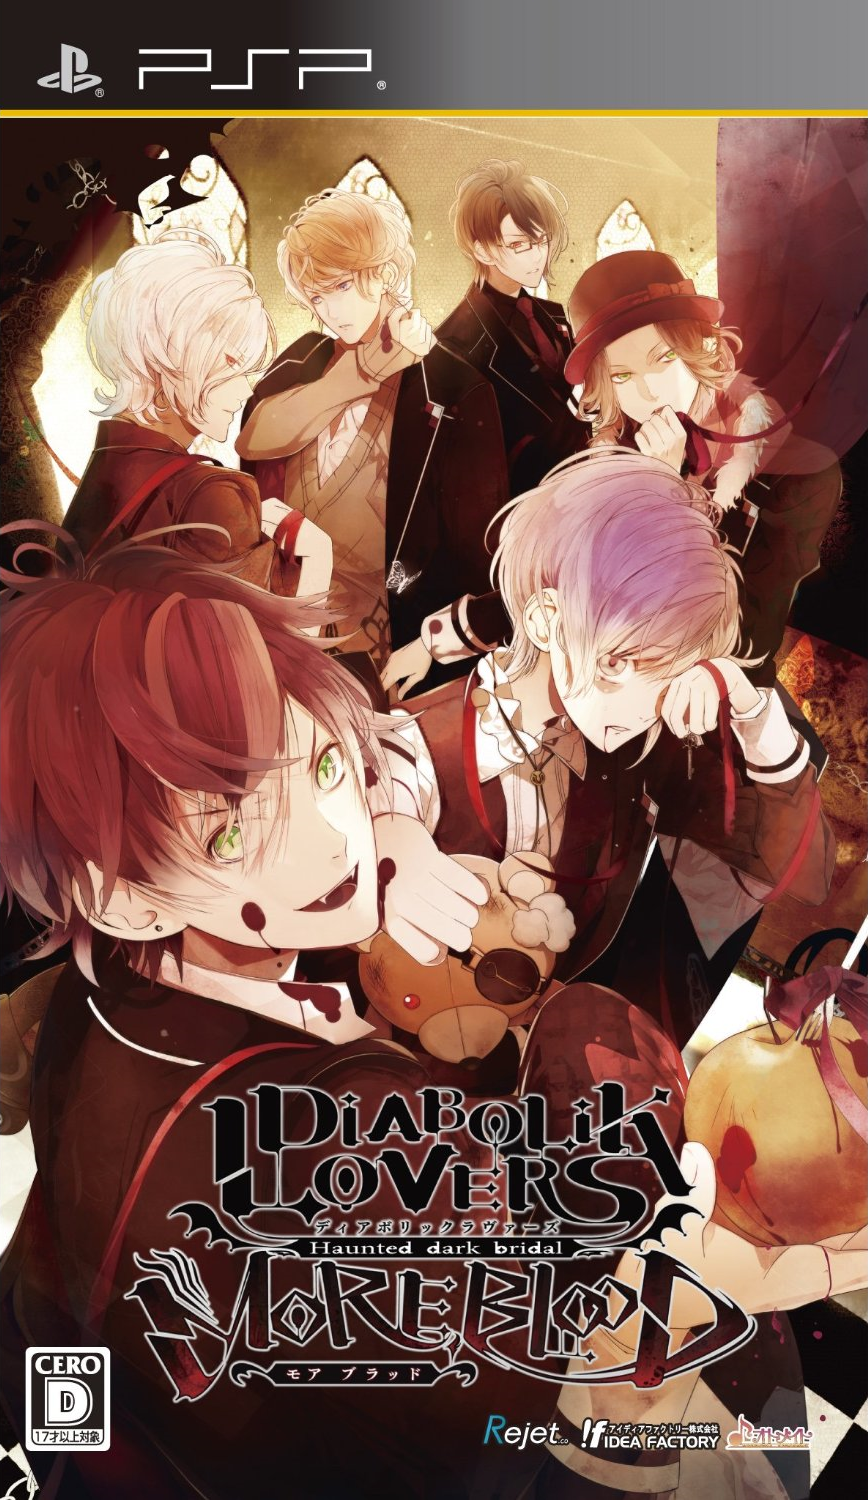 Diabolik Lovers- More, Blood PSP version